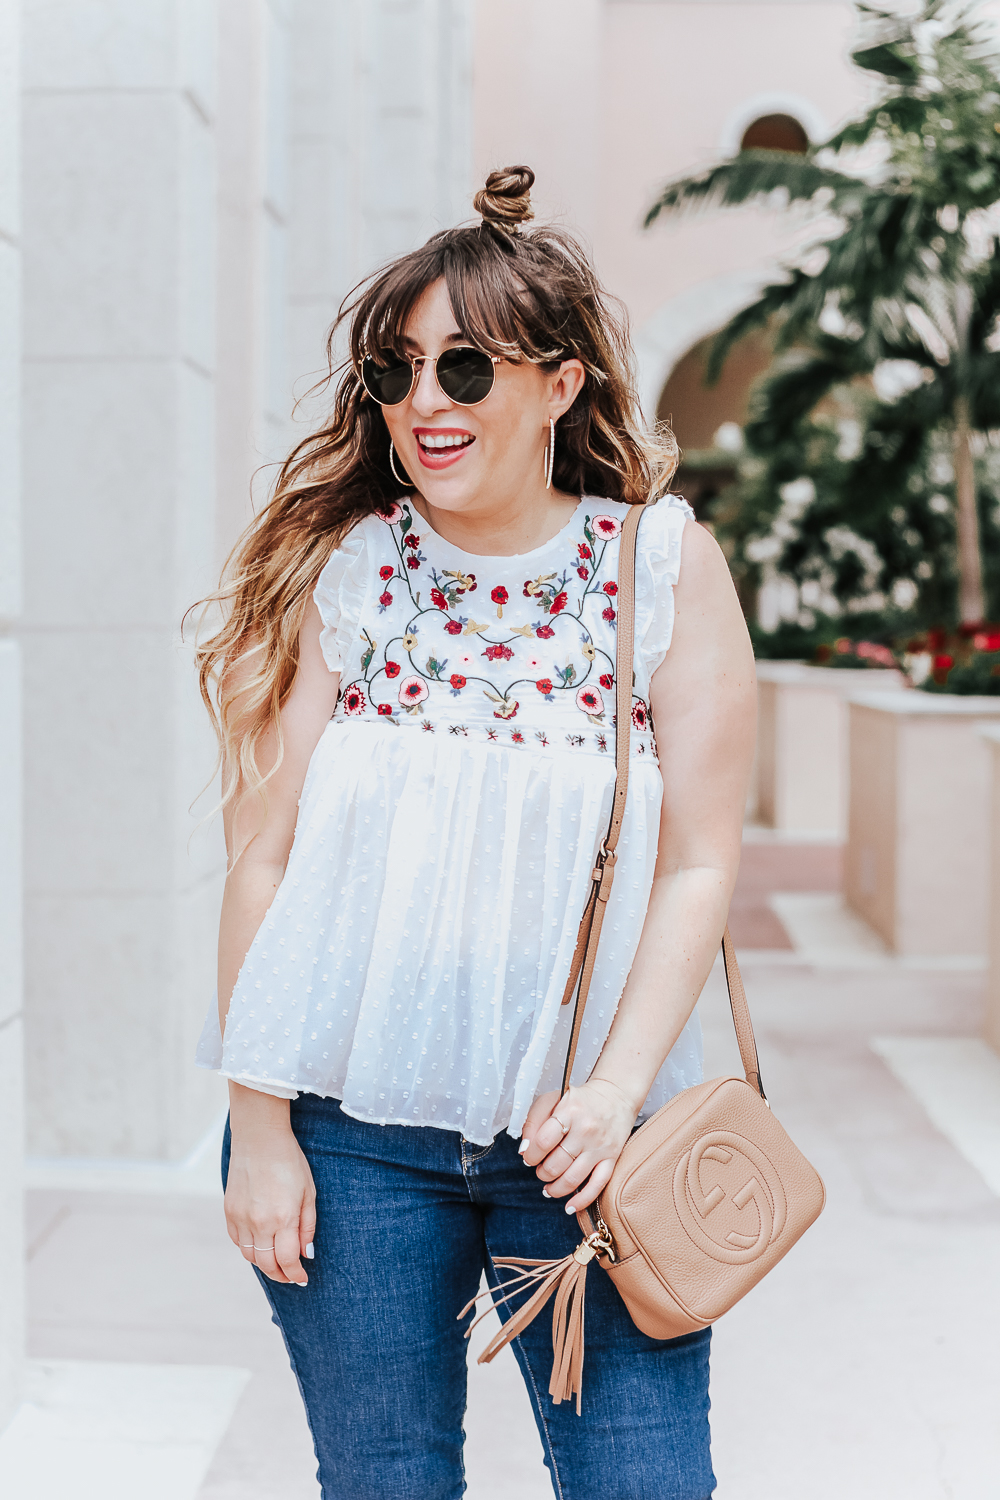 Embroidered babydoll top and jeans outfit idea_